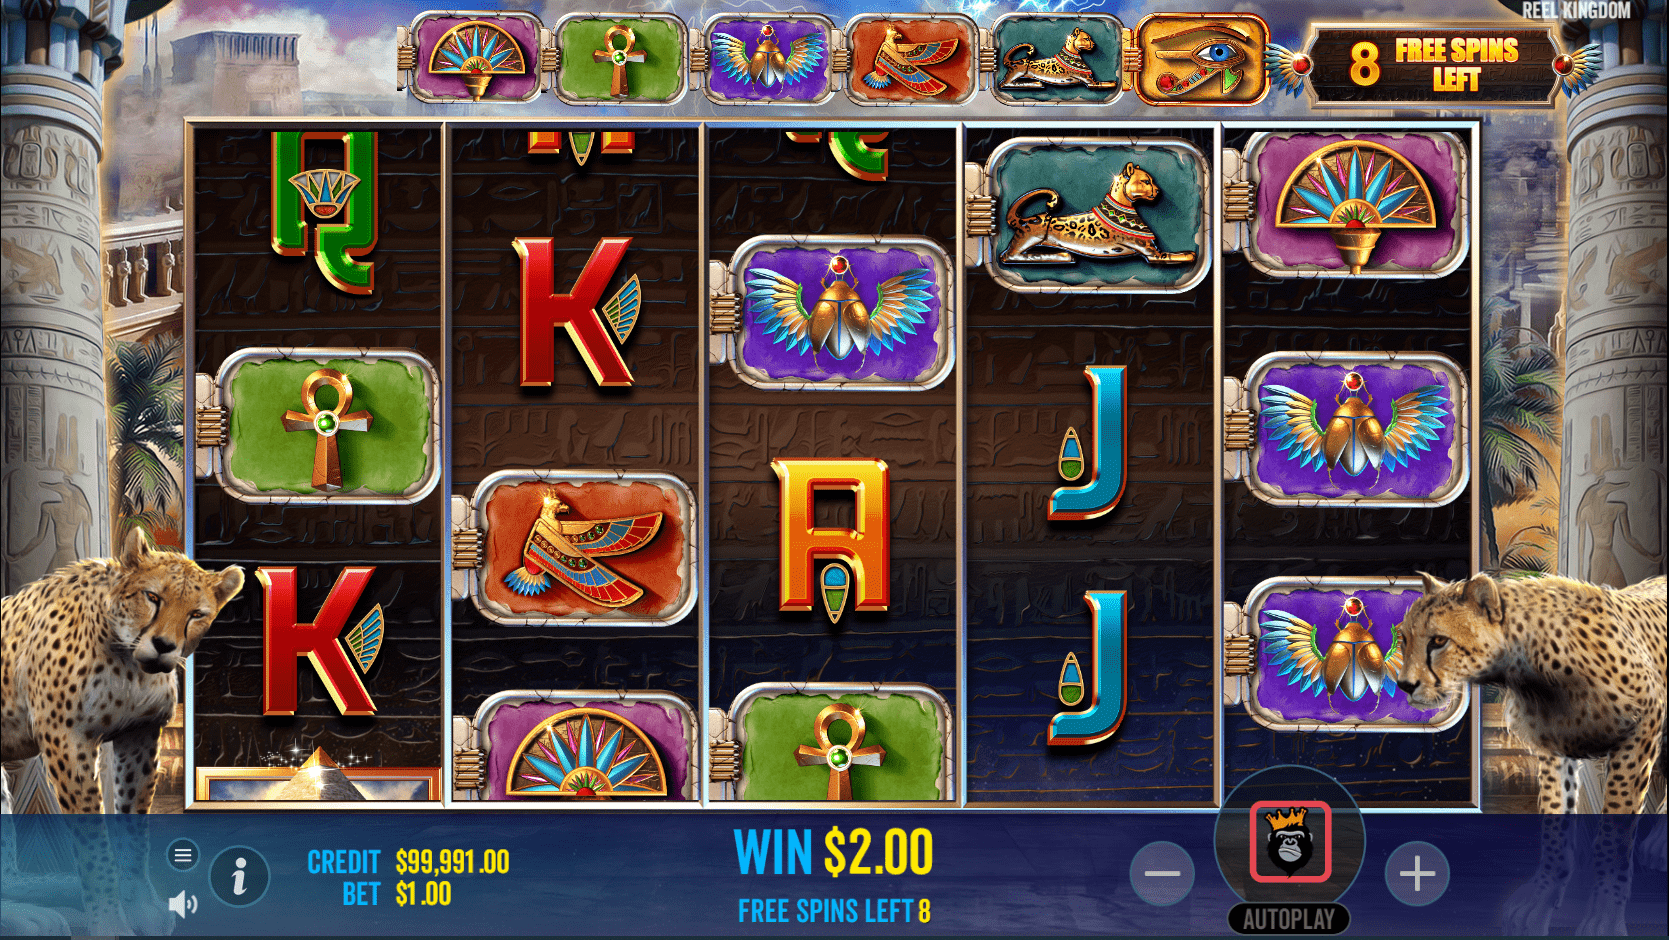 Eye of the Storm Slot Game Free Spins